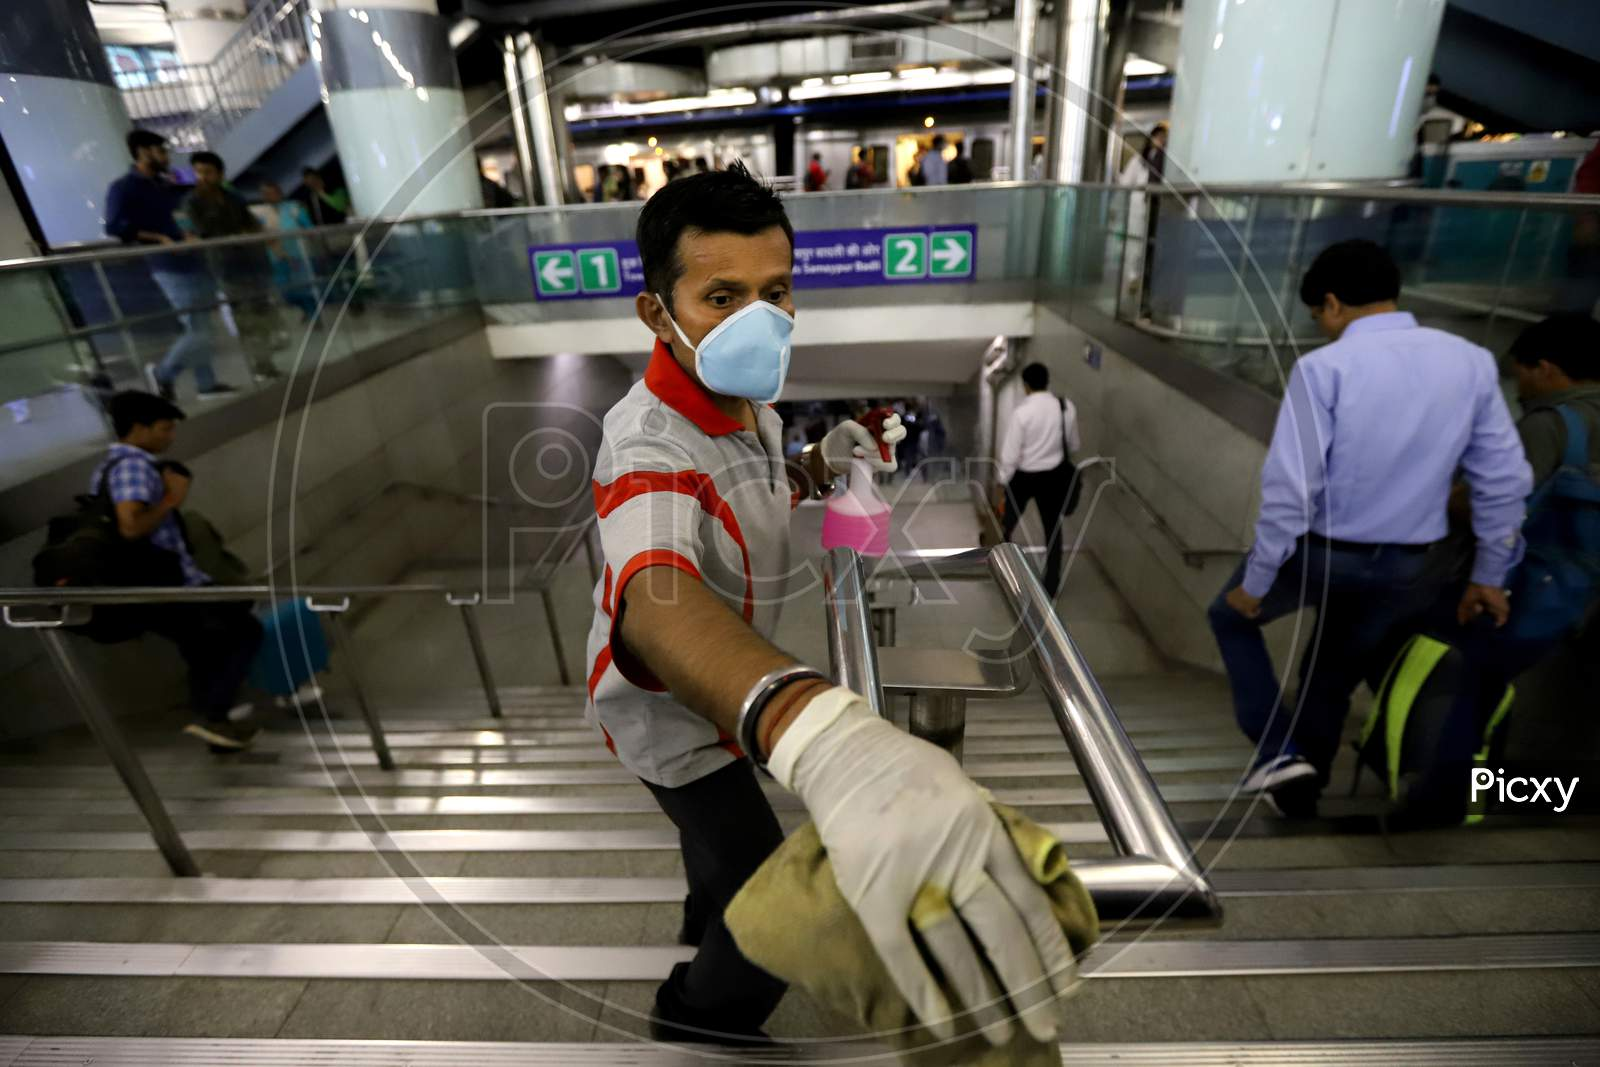 Delhi Metro Started Sanitation Drive As A Preventive Measure Against The Covid-19 Novel Coronavirus Walks Out Of A Metro Station In New Delhi On March 13, 2020.